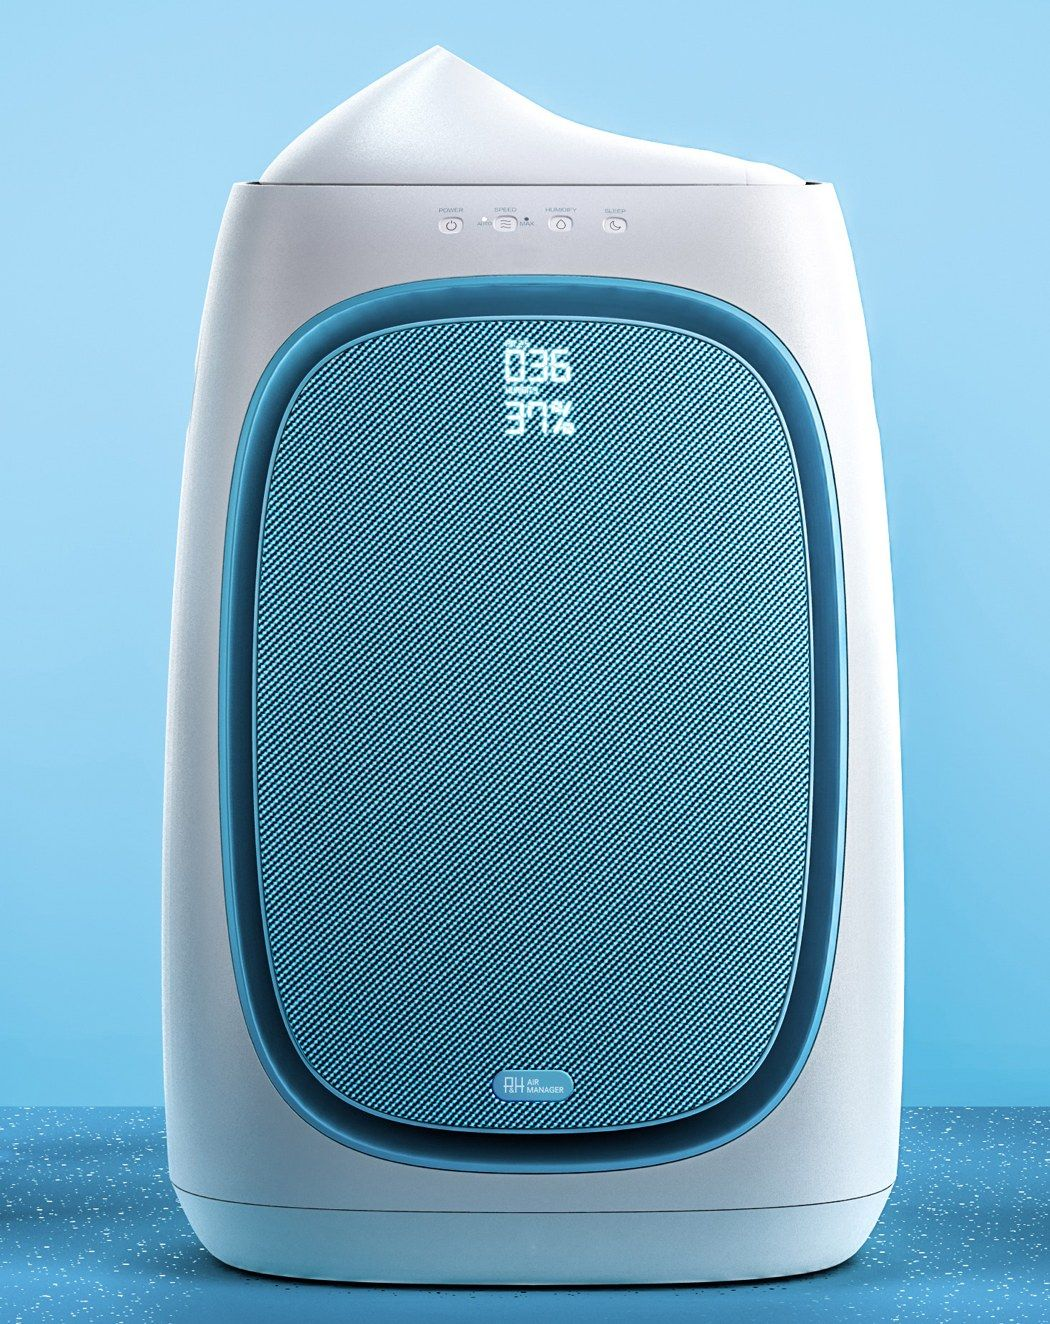 Pin by poppy y on HaierPI References Air purifier, Air